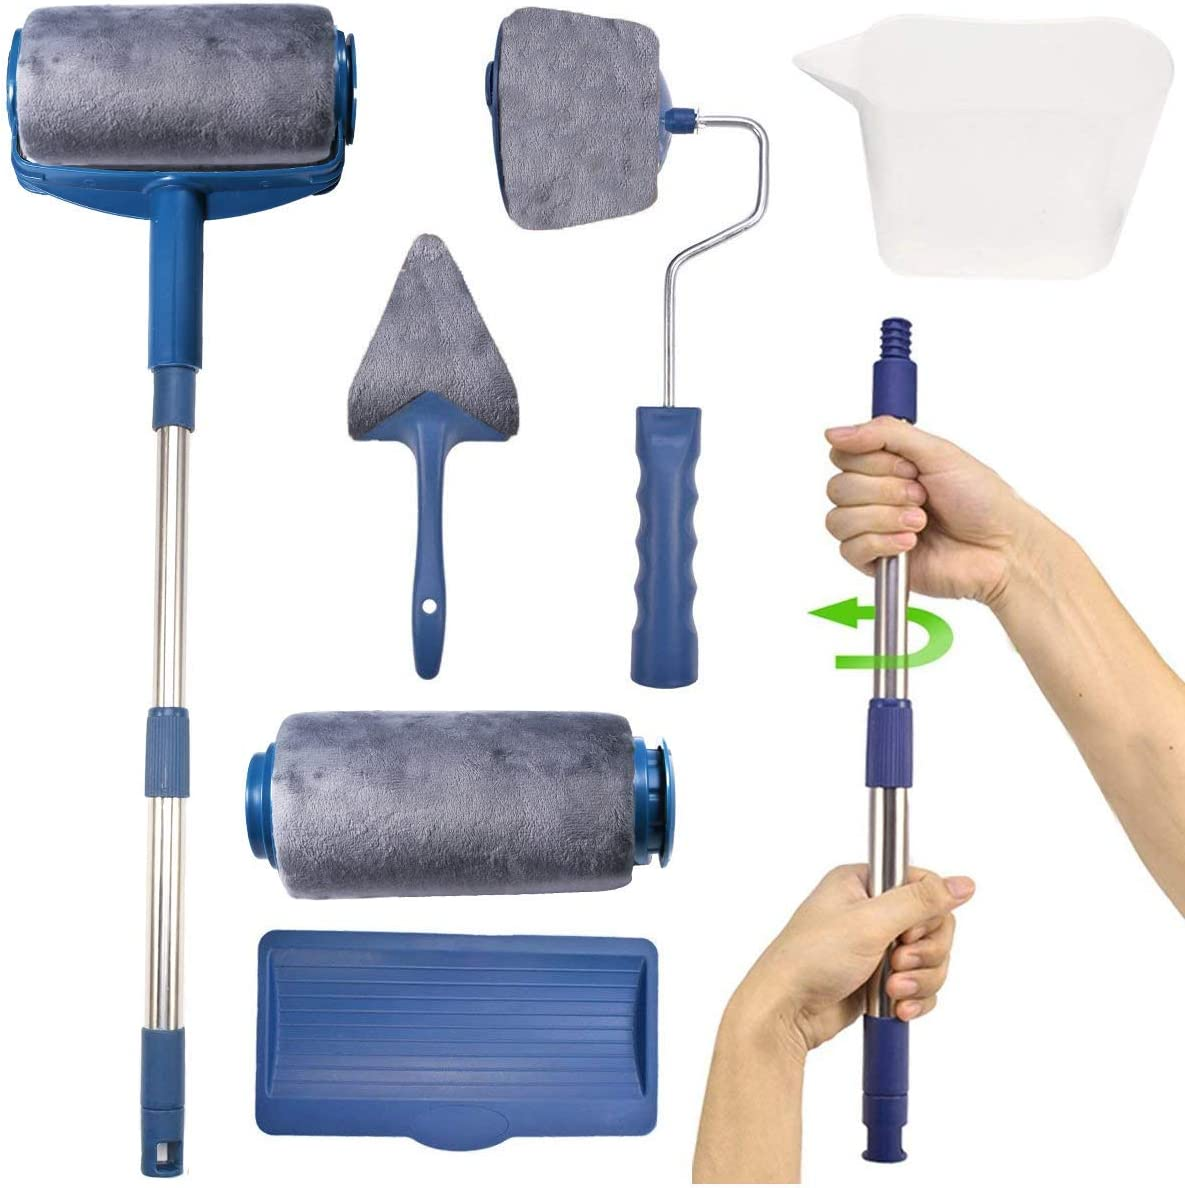 PAINT ROLLER KIT SET with Tray Painting Runner Decor New